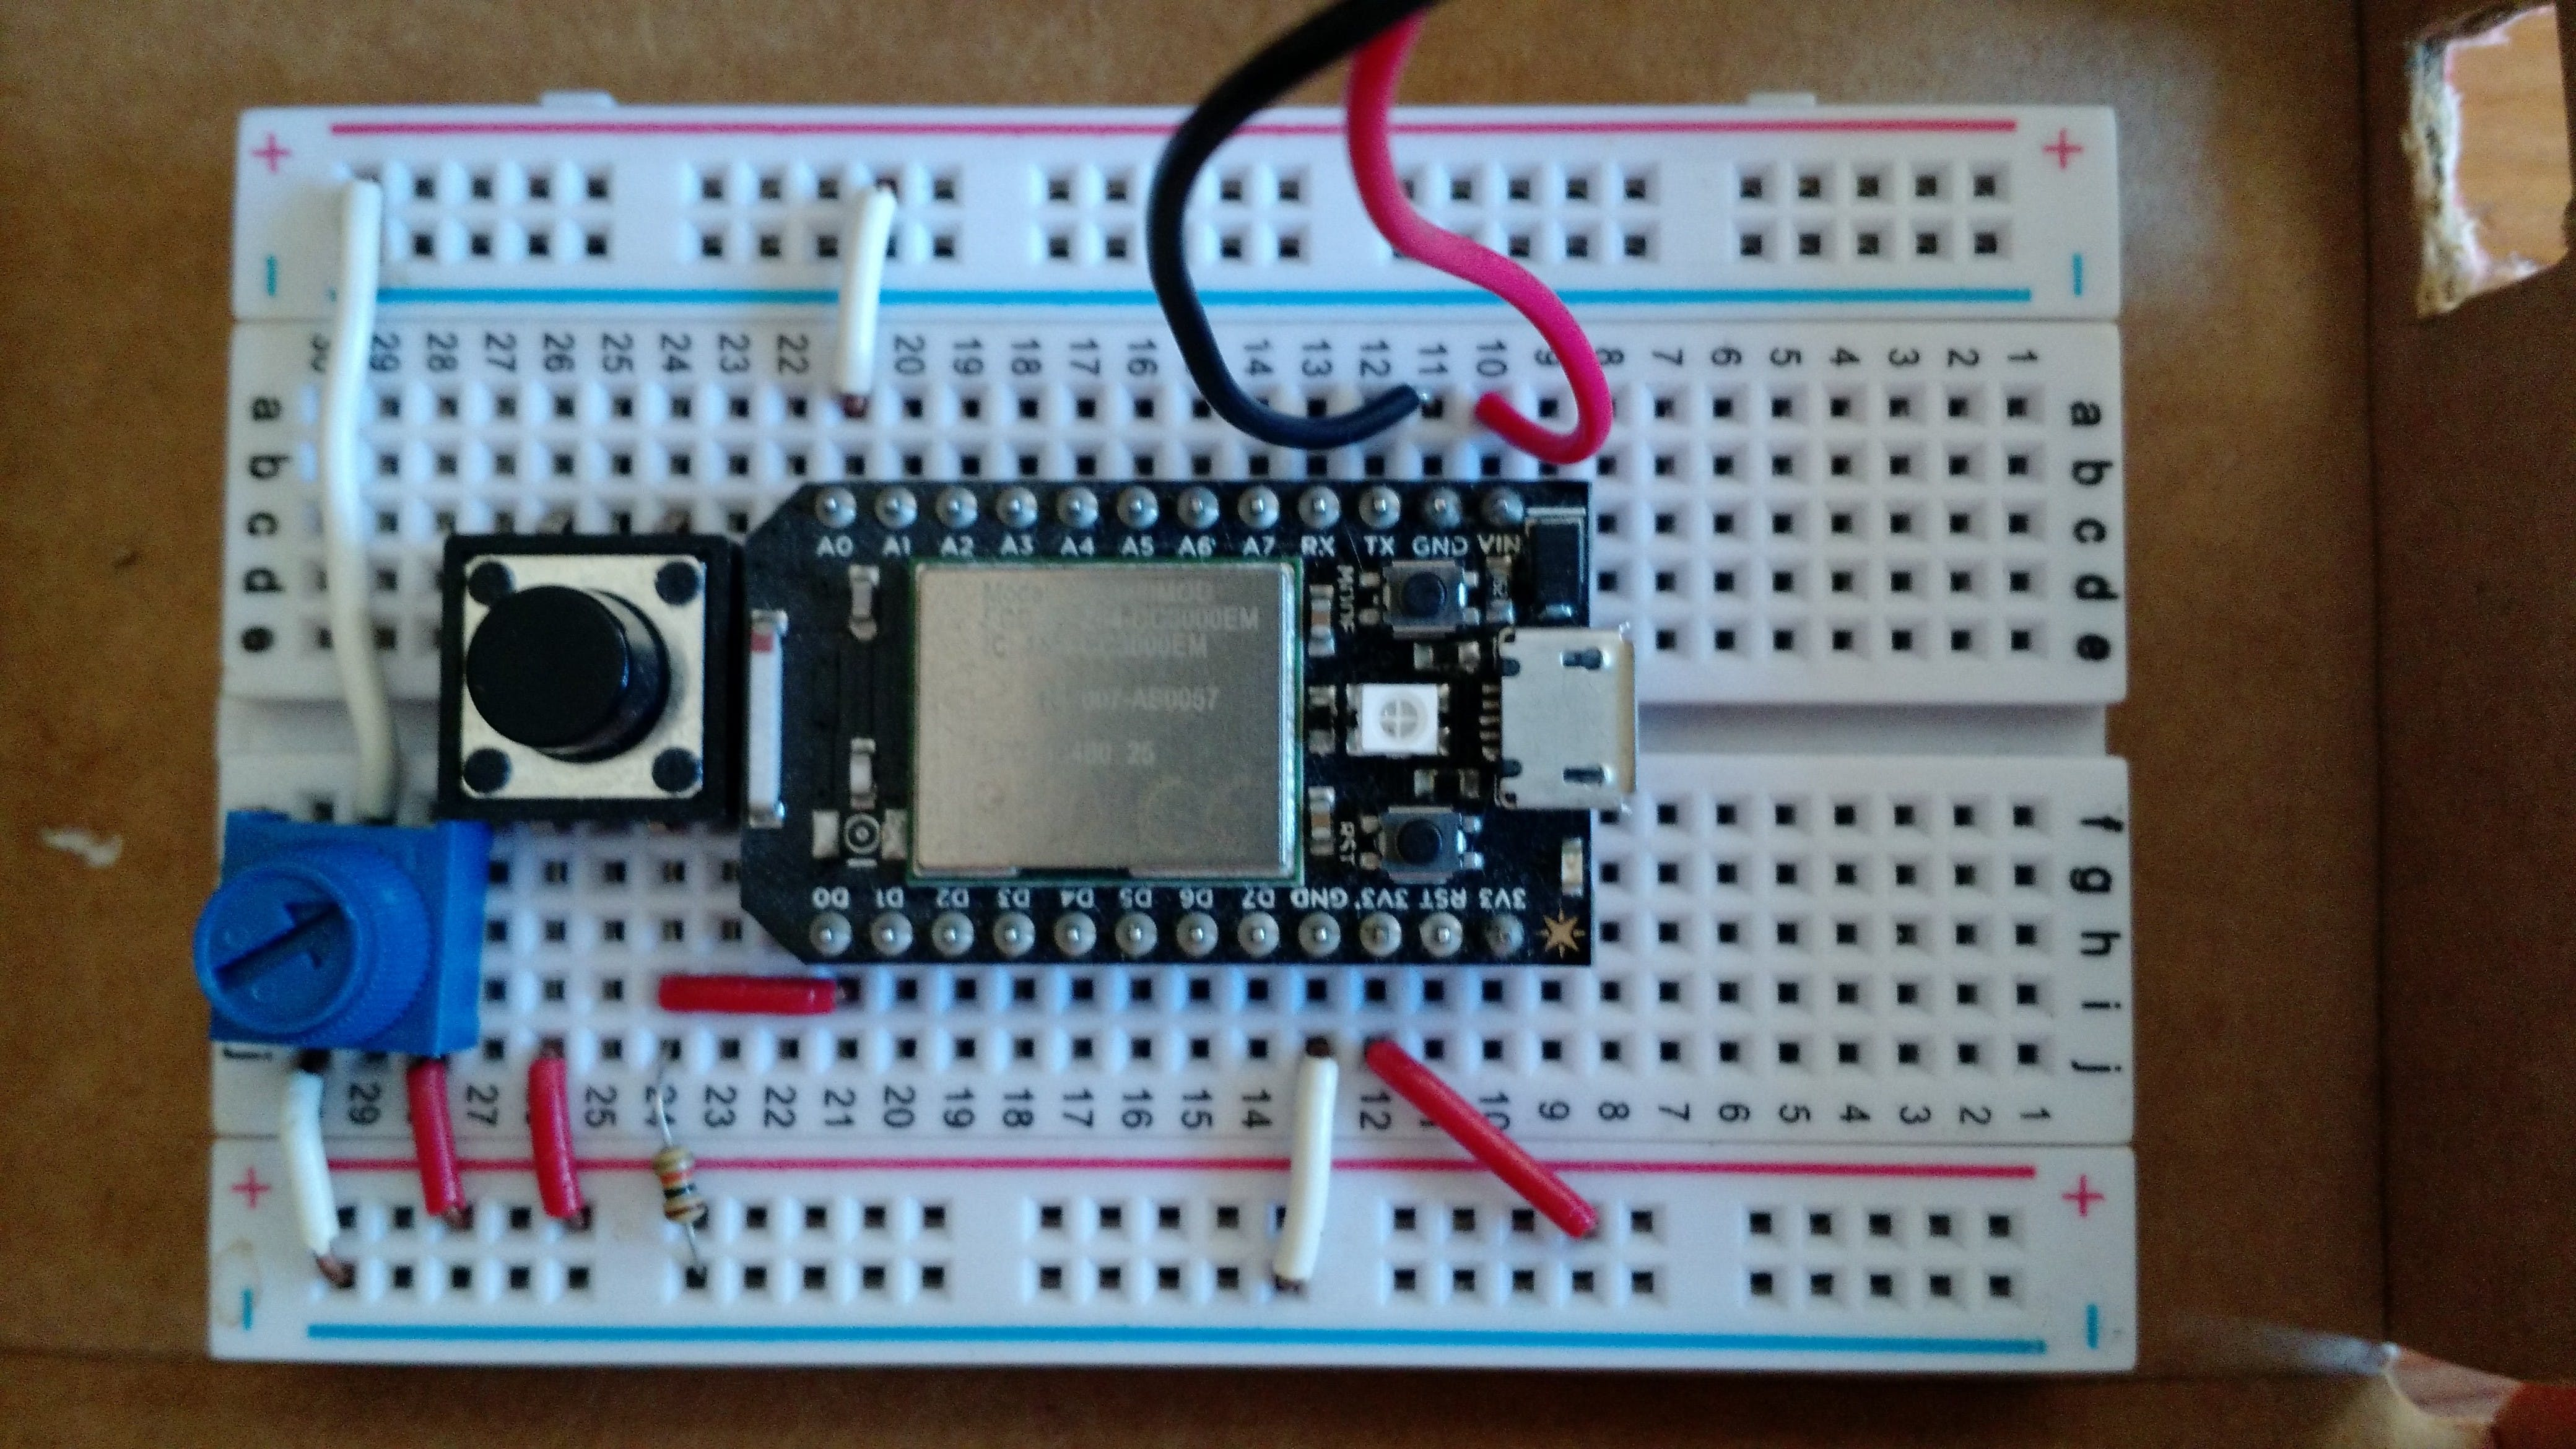 The photo shows a push button and a potentiometer which is not required for this build.